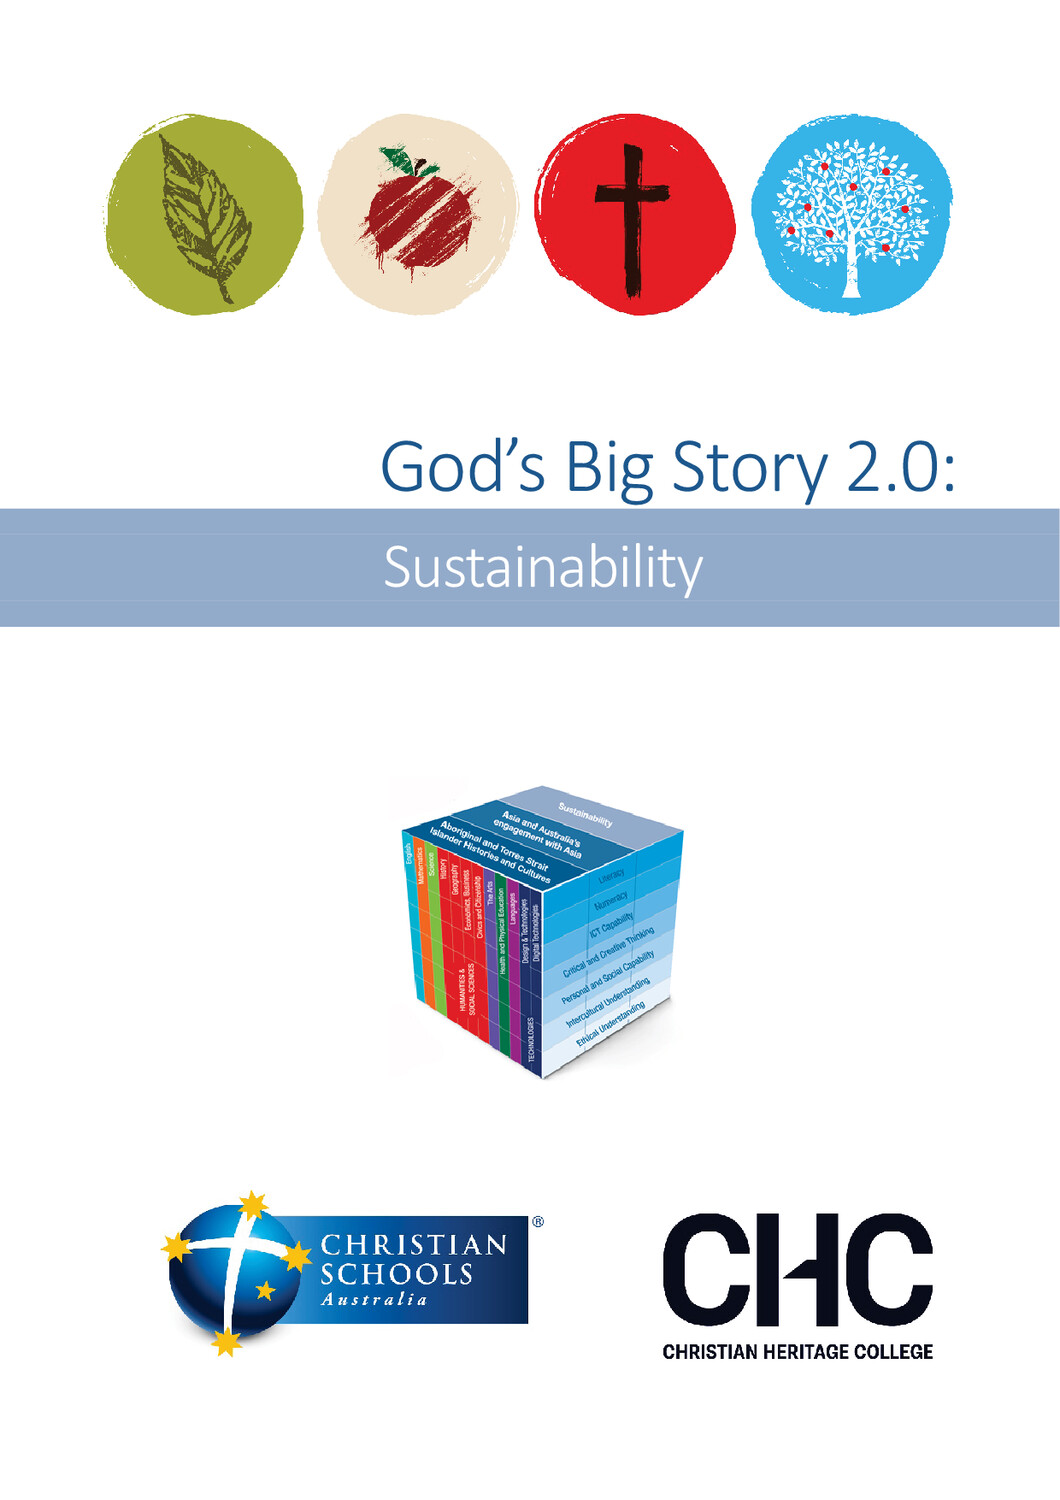 God's Big Story 2.0: Sustainability